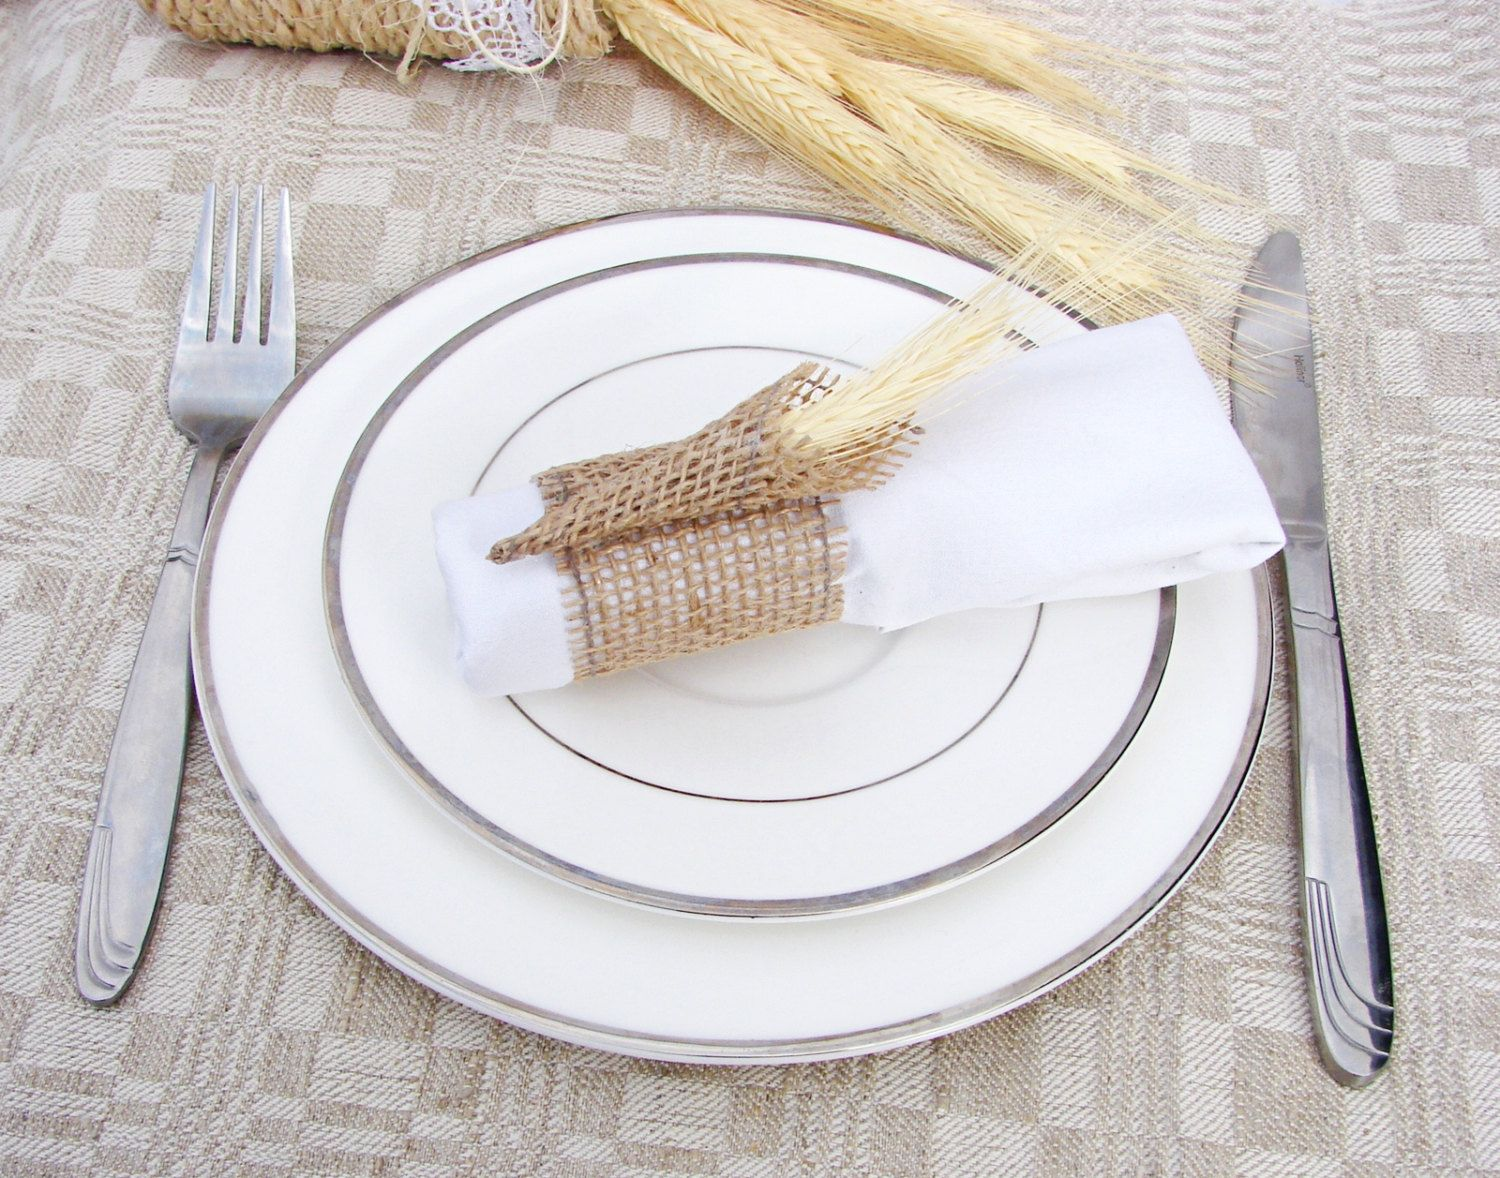 20 burlap napkin holderwedding napkin ringsrustic wedding decorrustic napkin holder - Wedding Napkin Rings